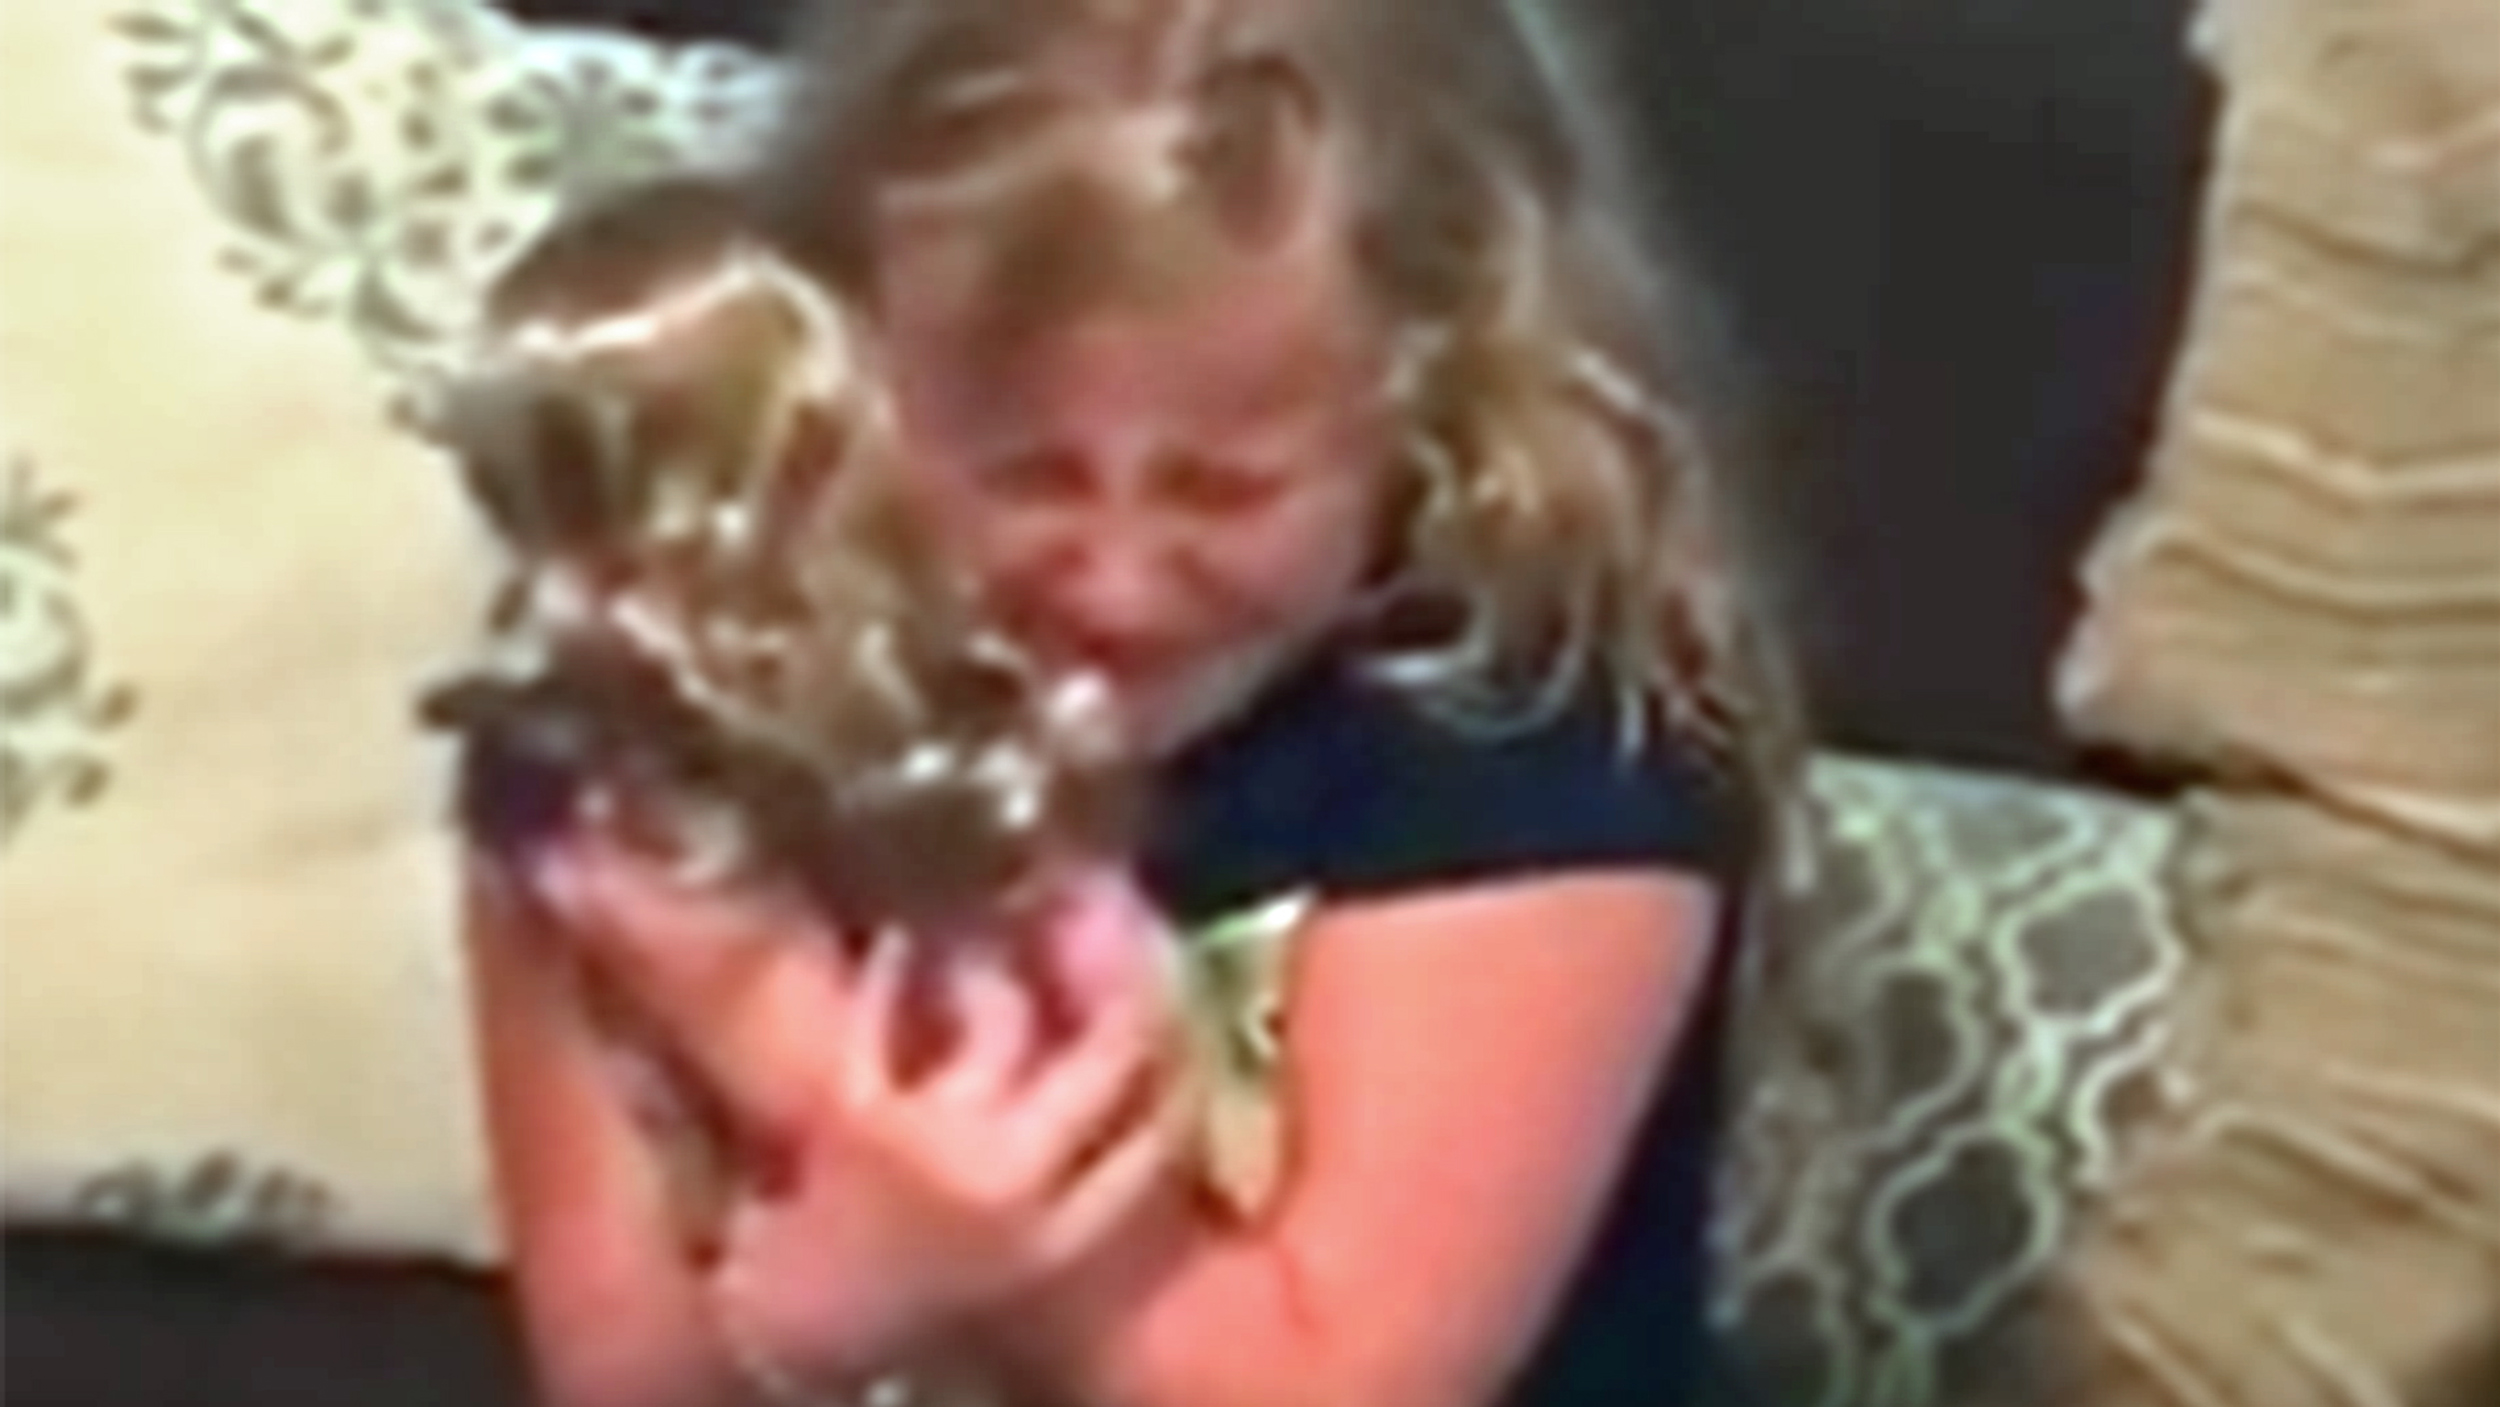 Watch This Girl Cry Tears Of Joy After Getting A Doll With